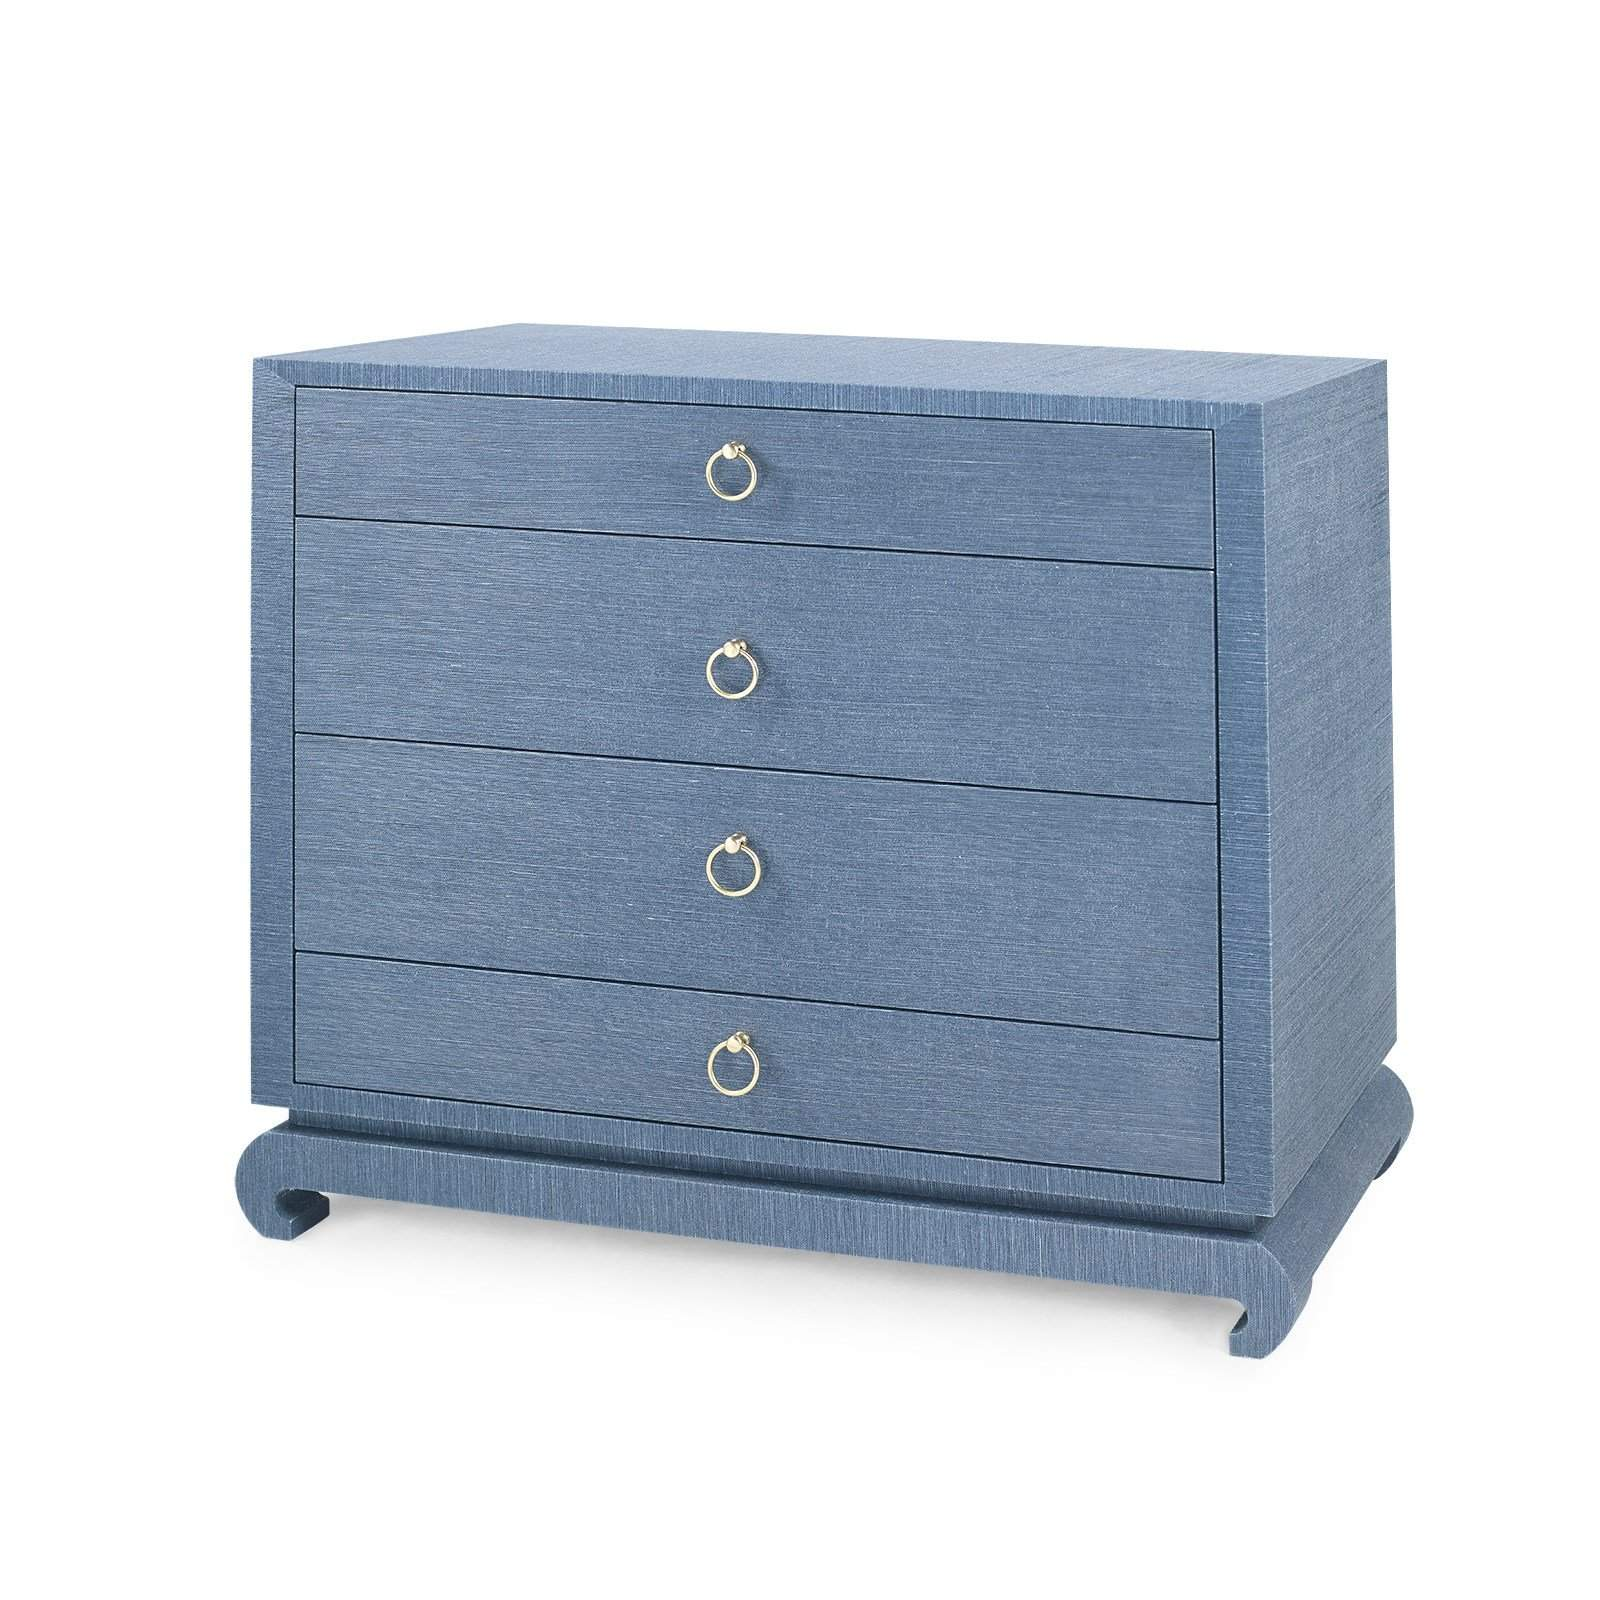 Bungalow 5 - MING LARGE 4-DRAWER in NAVY BLUE